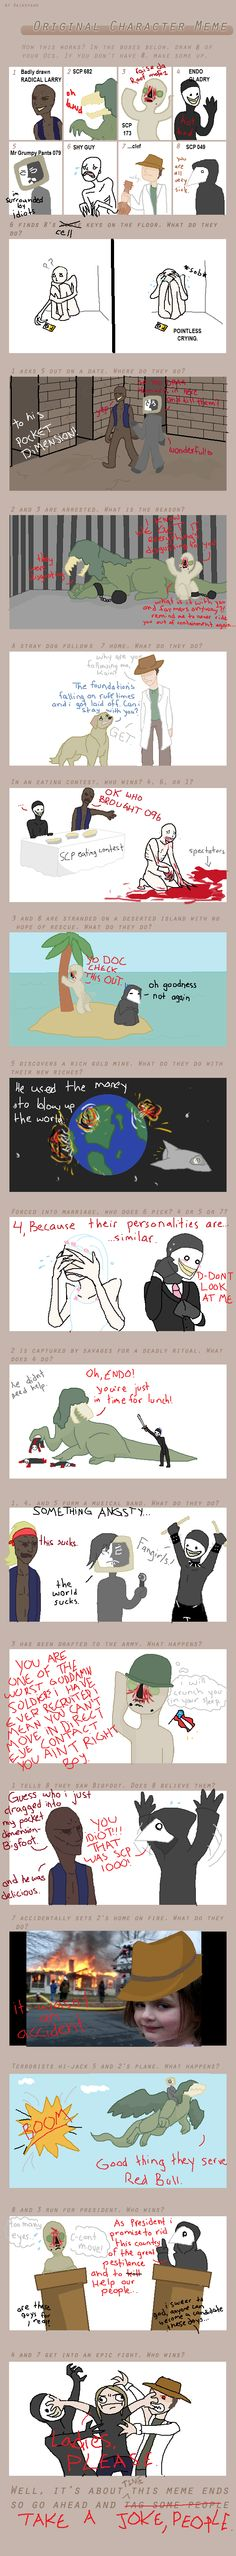 SCP Character Meme by Danwolfefersrs on DeviantArt